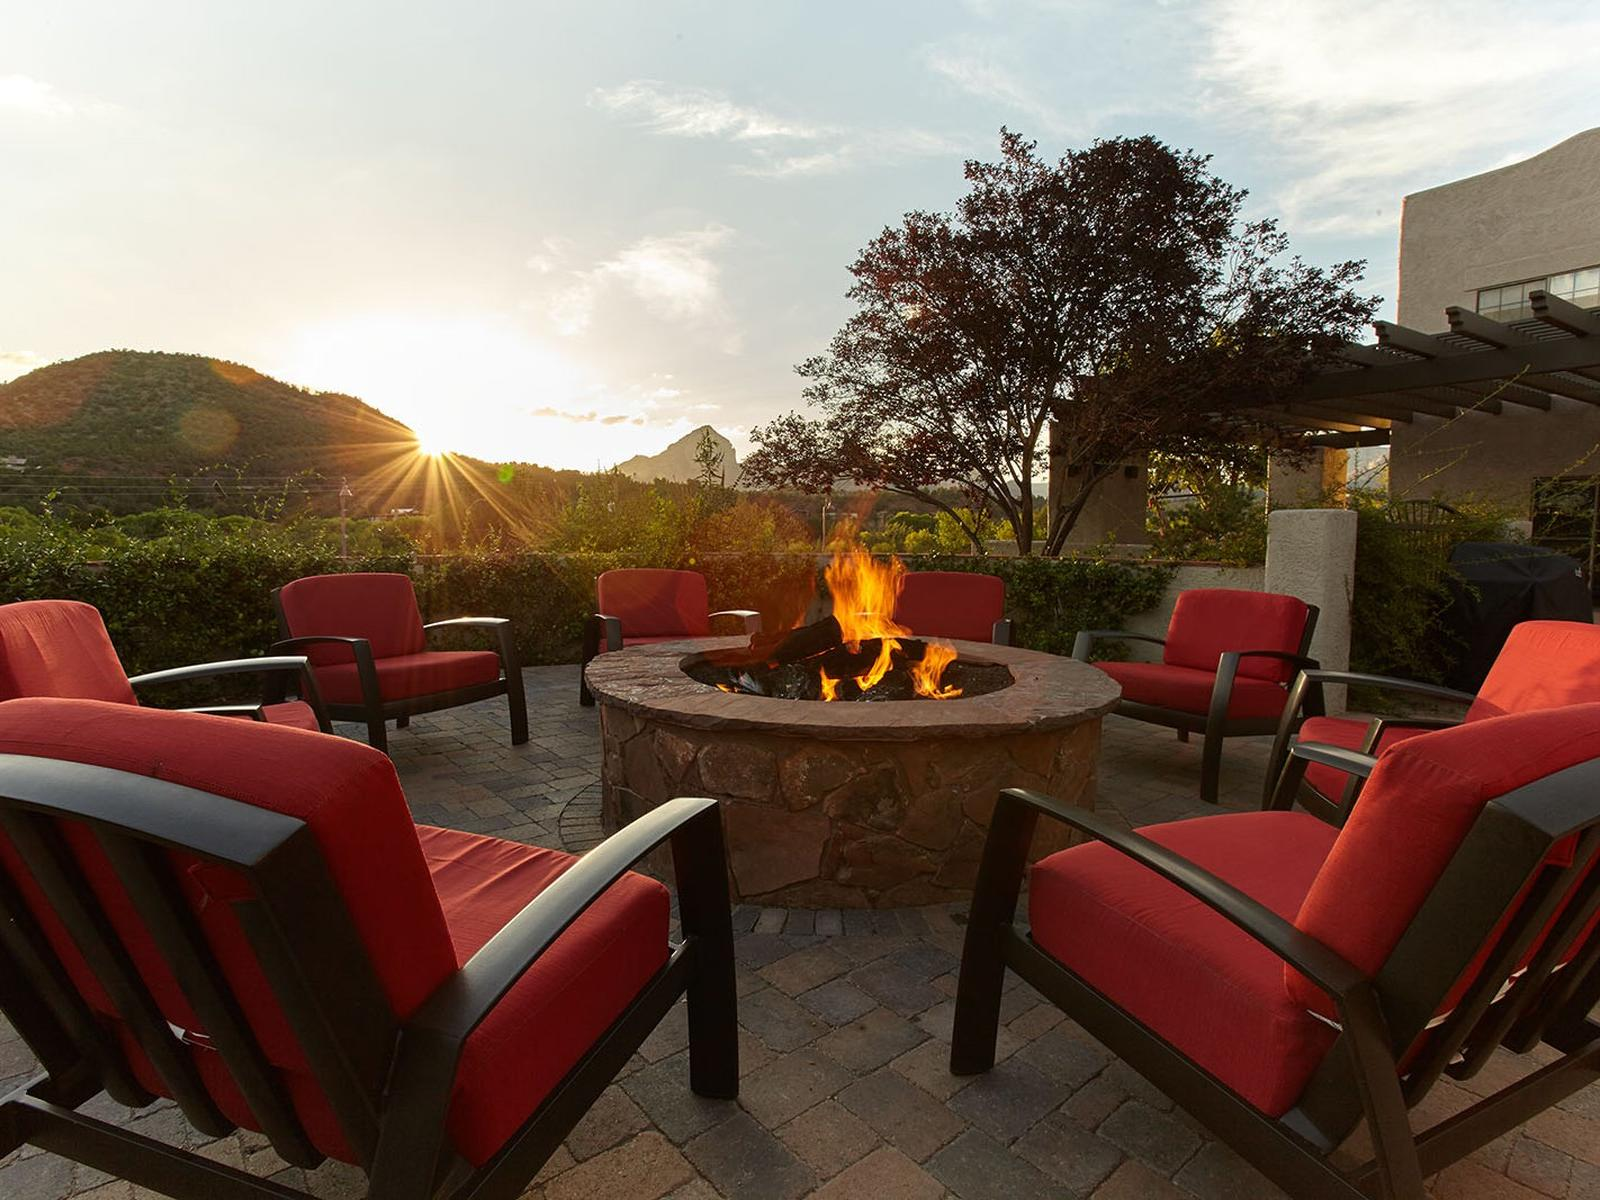 Fire pit under the Arizona sunset.